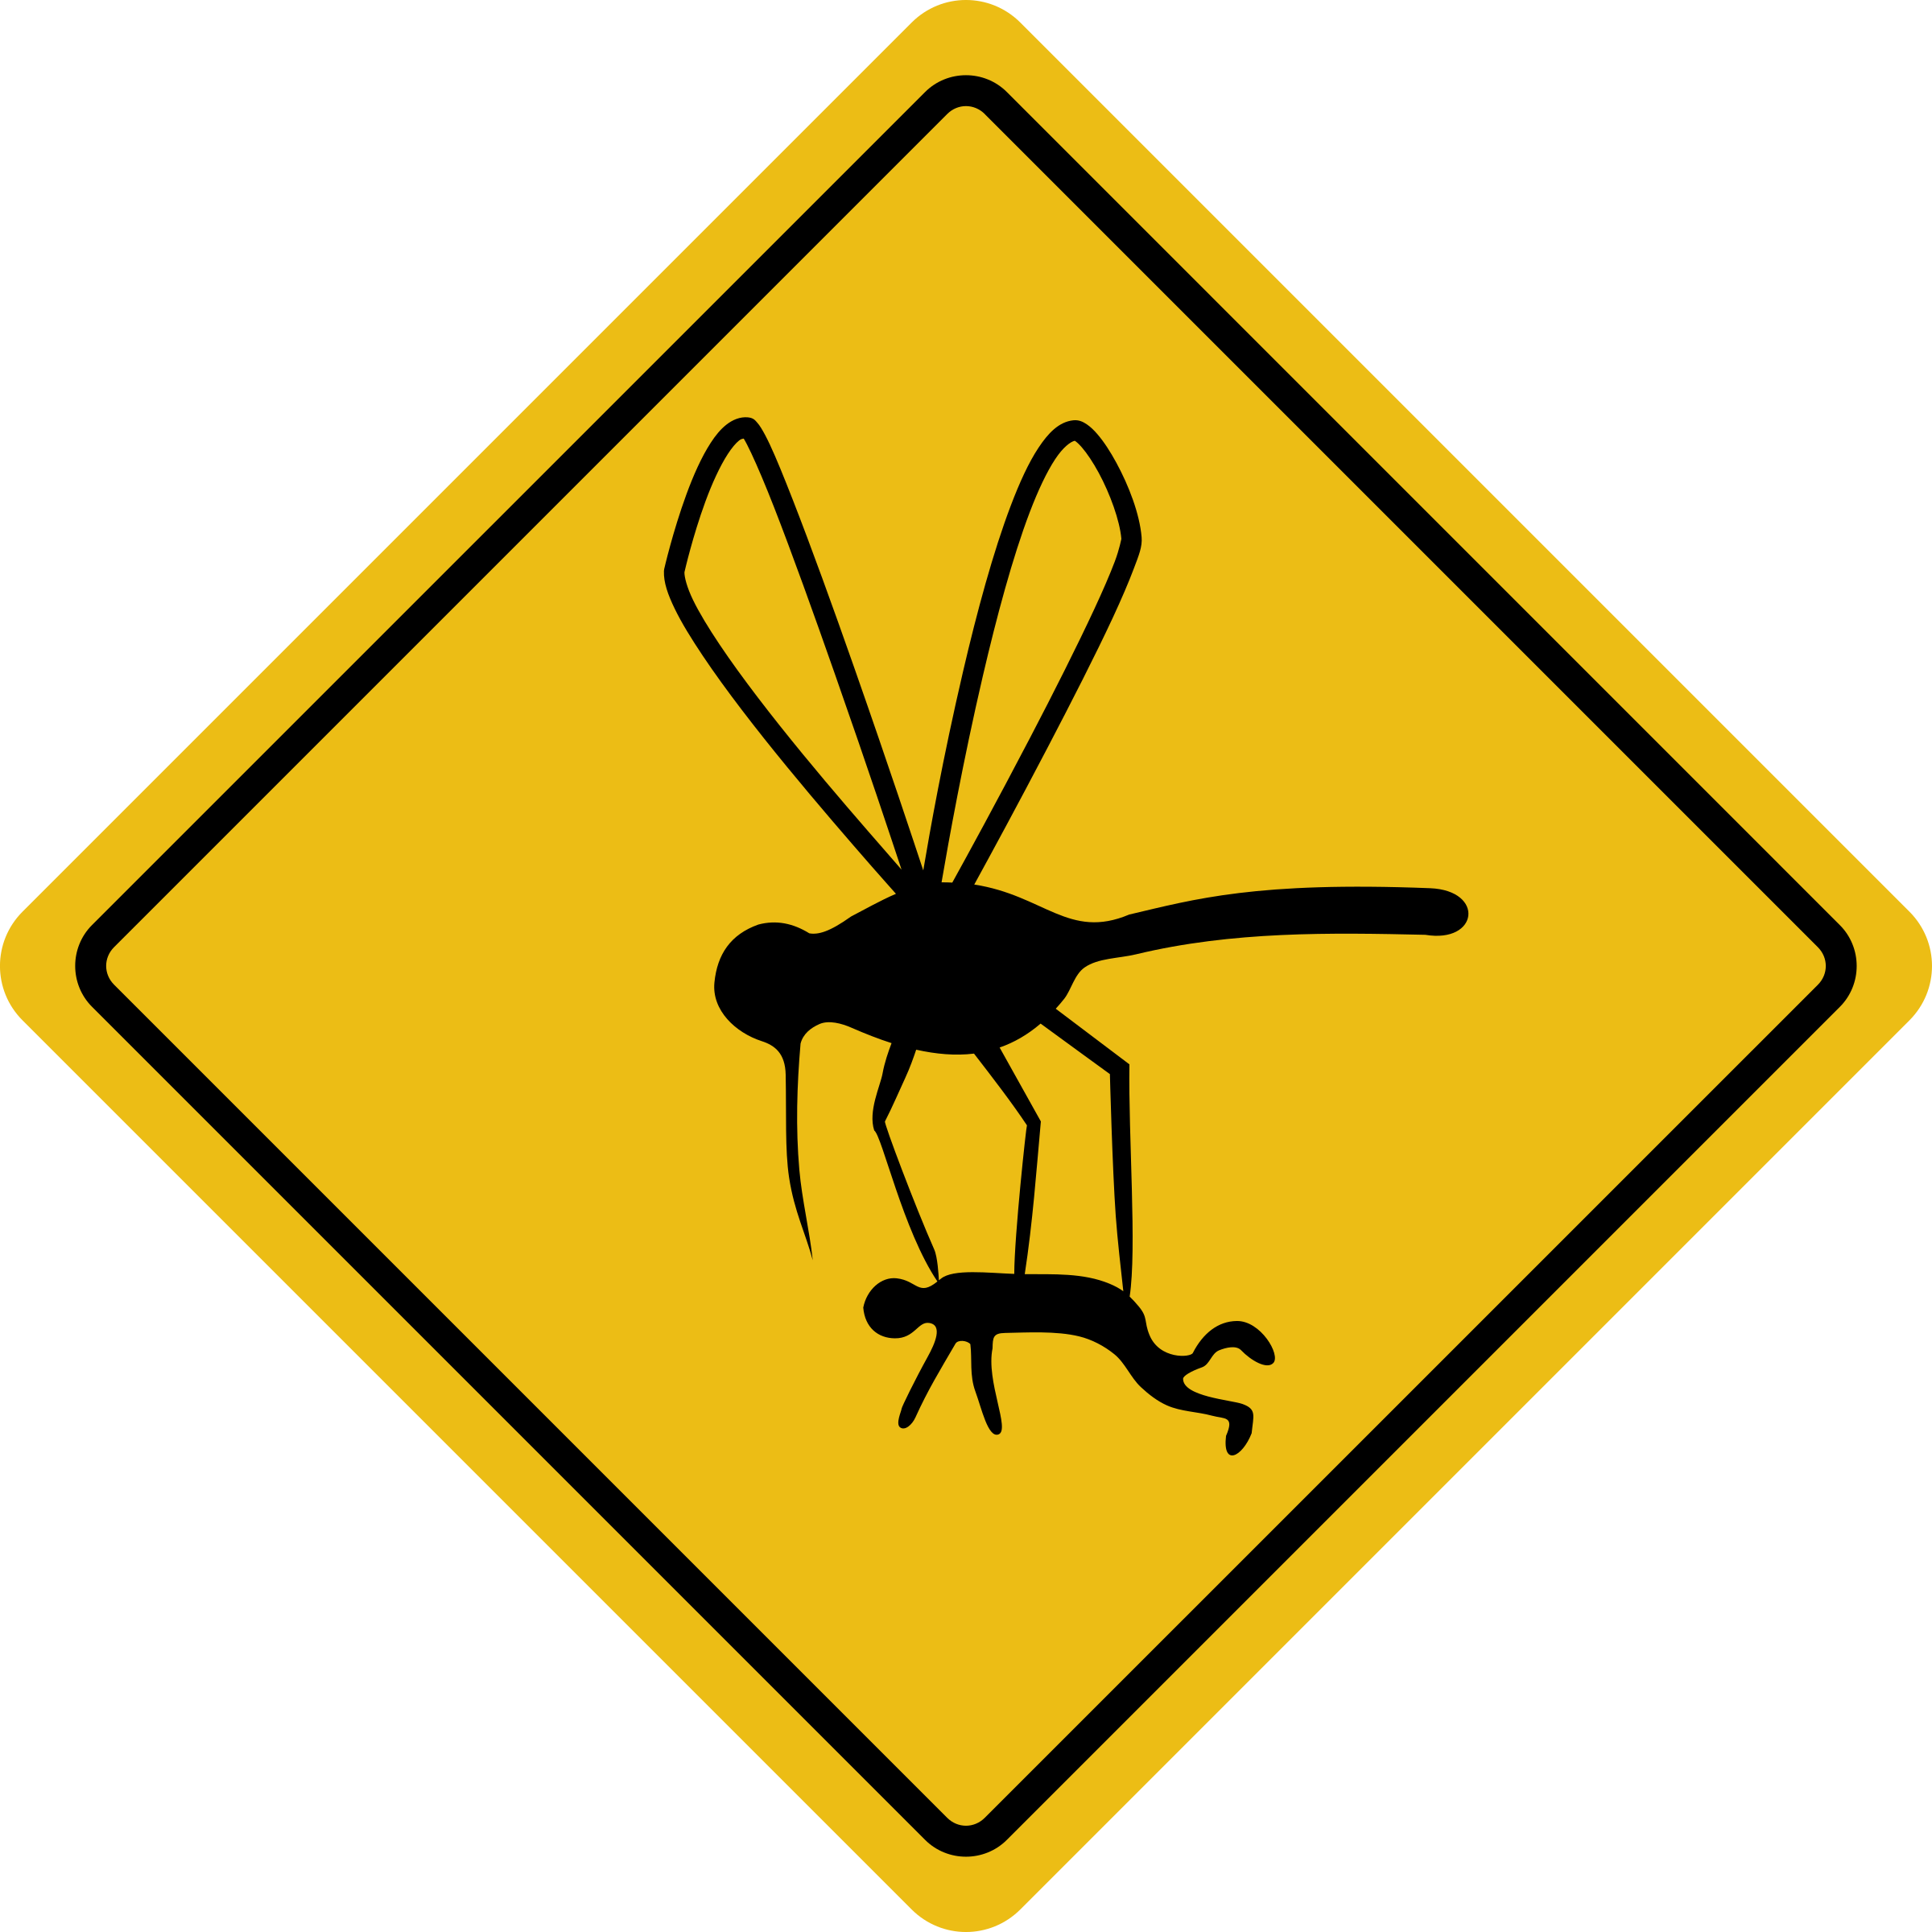 Shadows clipart mosquito Mosquito cliparts Clipart Mosquito hazard